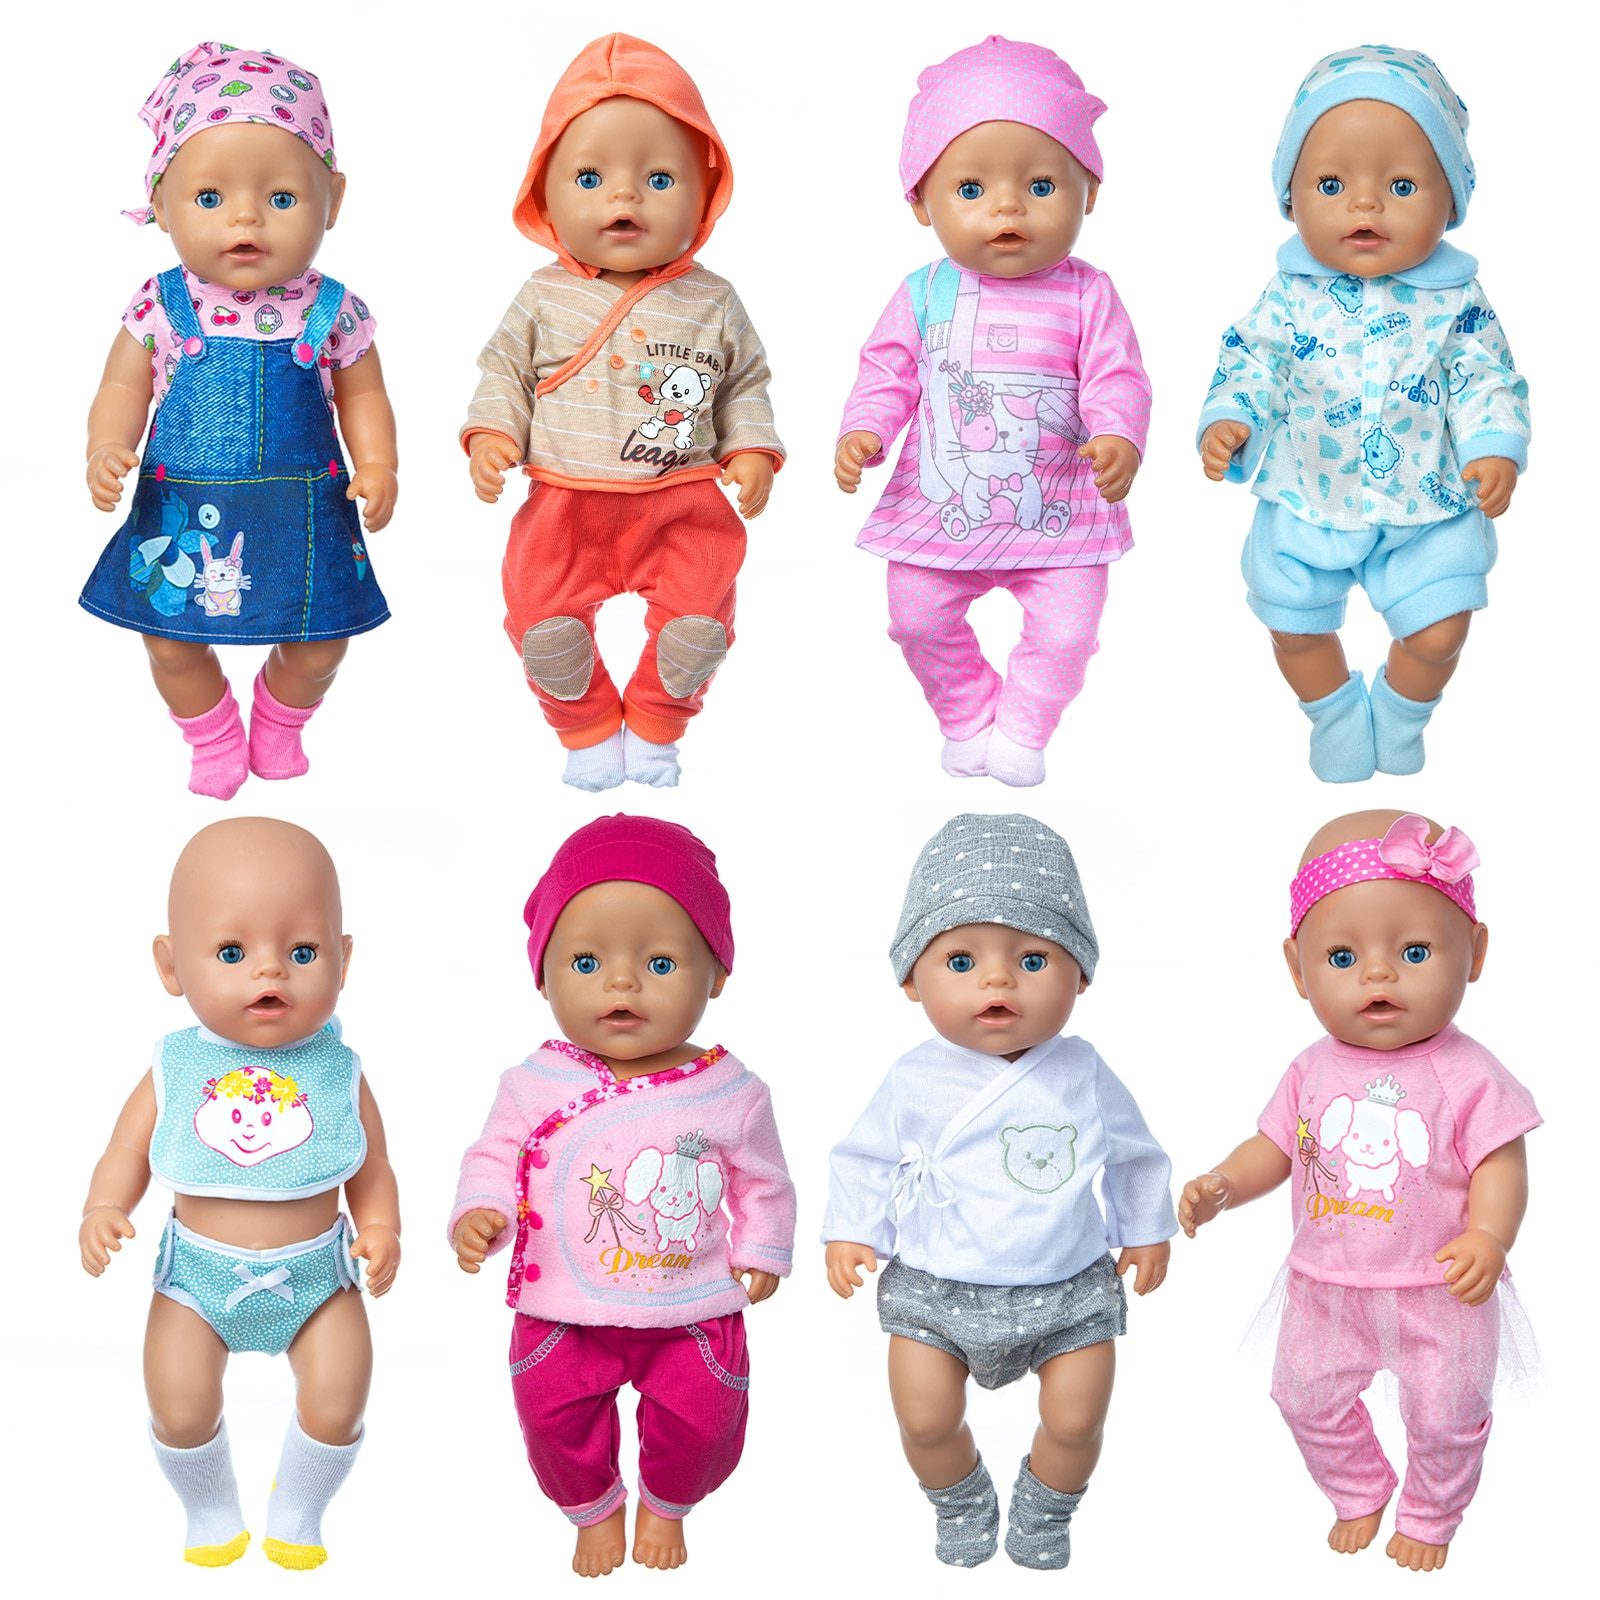 Born New Baby Fit 18 inch 43cm Doll Clothes Doll Strawberry Pineapple, Fruit and Hair Ribbon Suit Ac